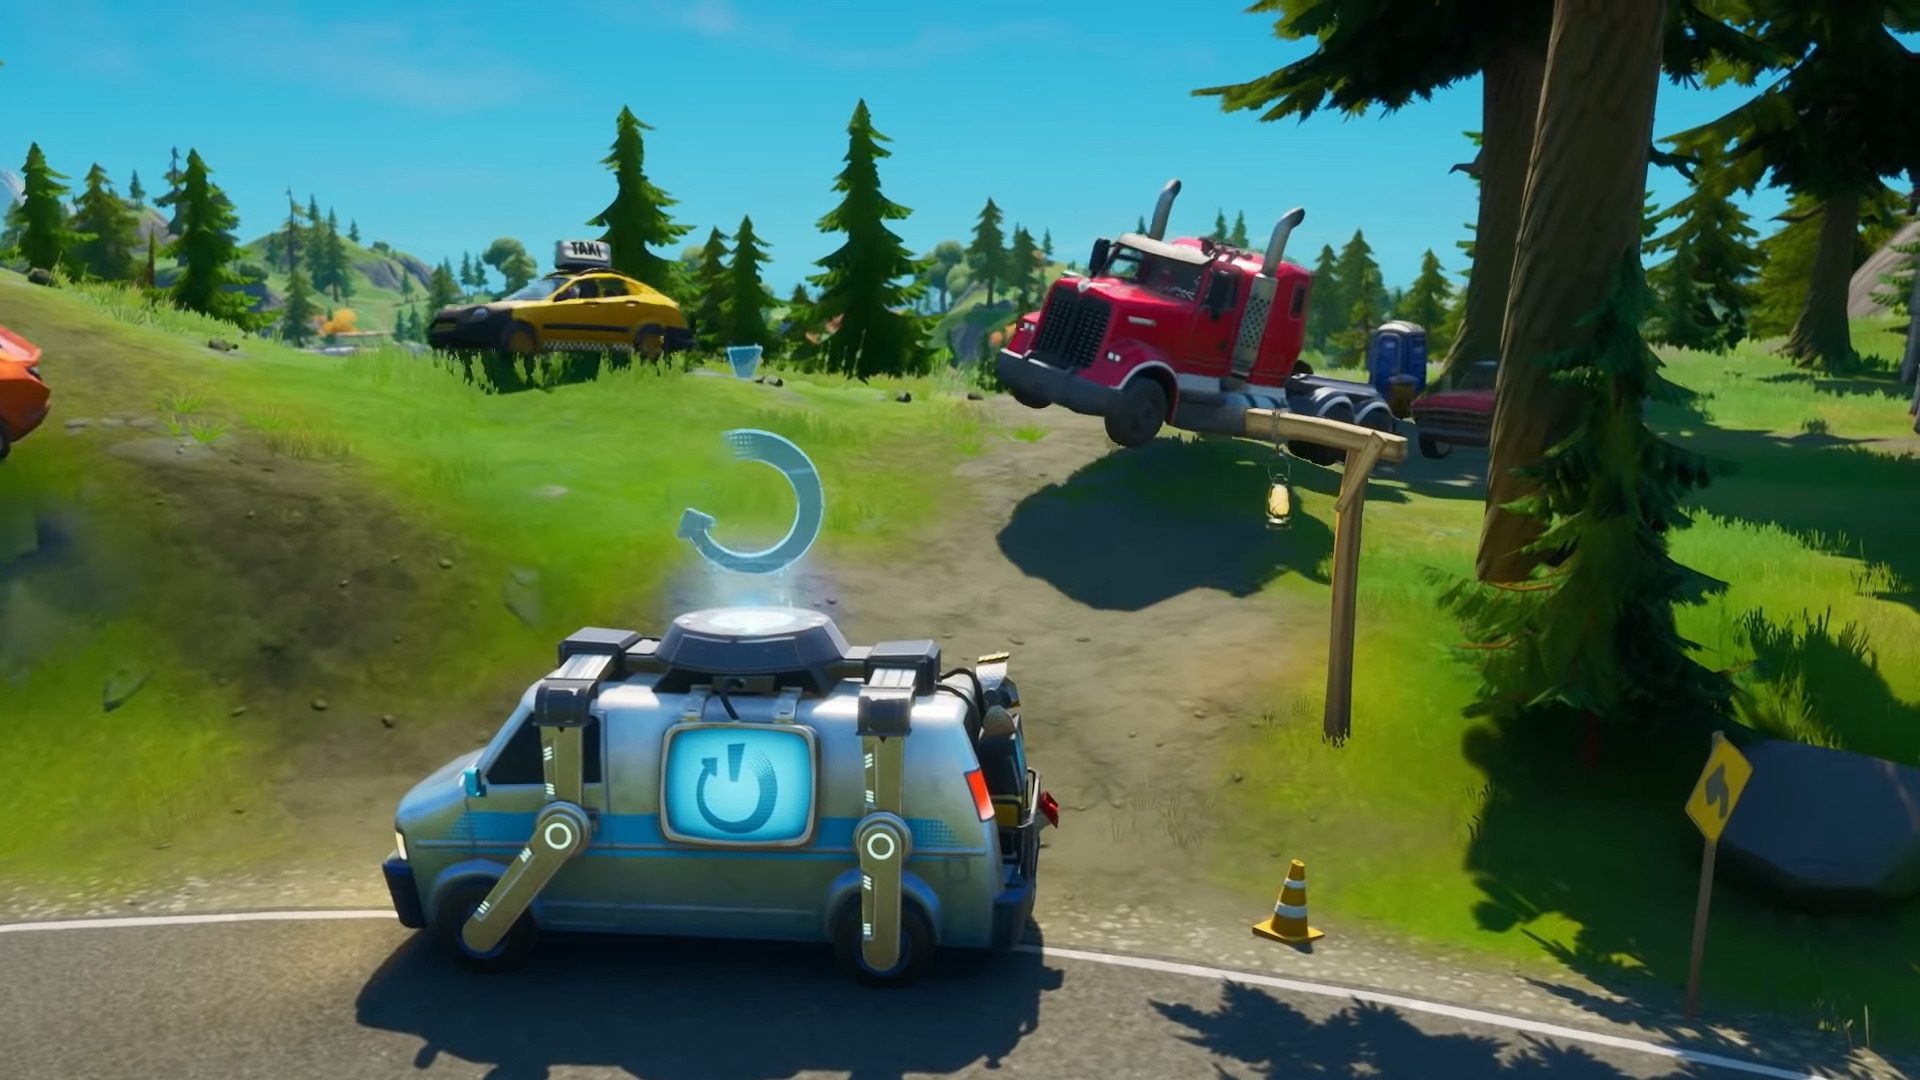 Fortnite Car Locations How To Drive Cars In Fortnite Gamewatcher